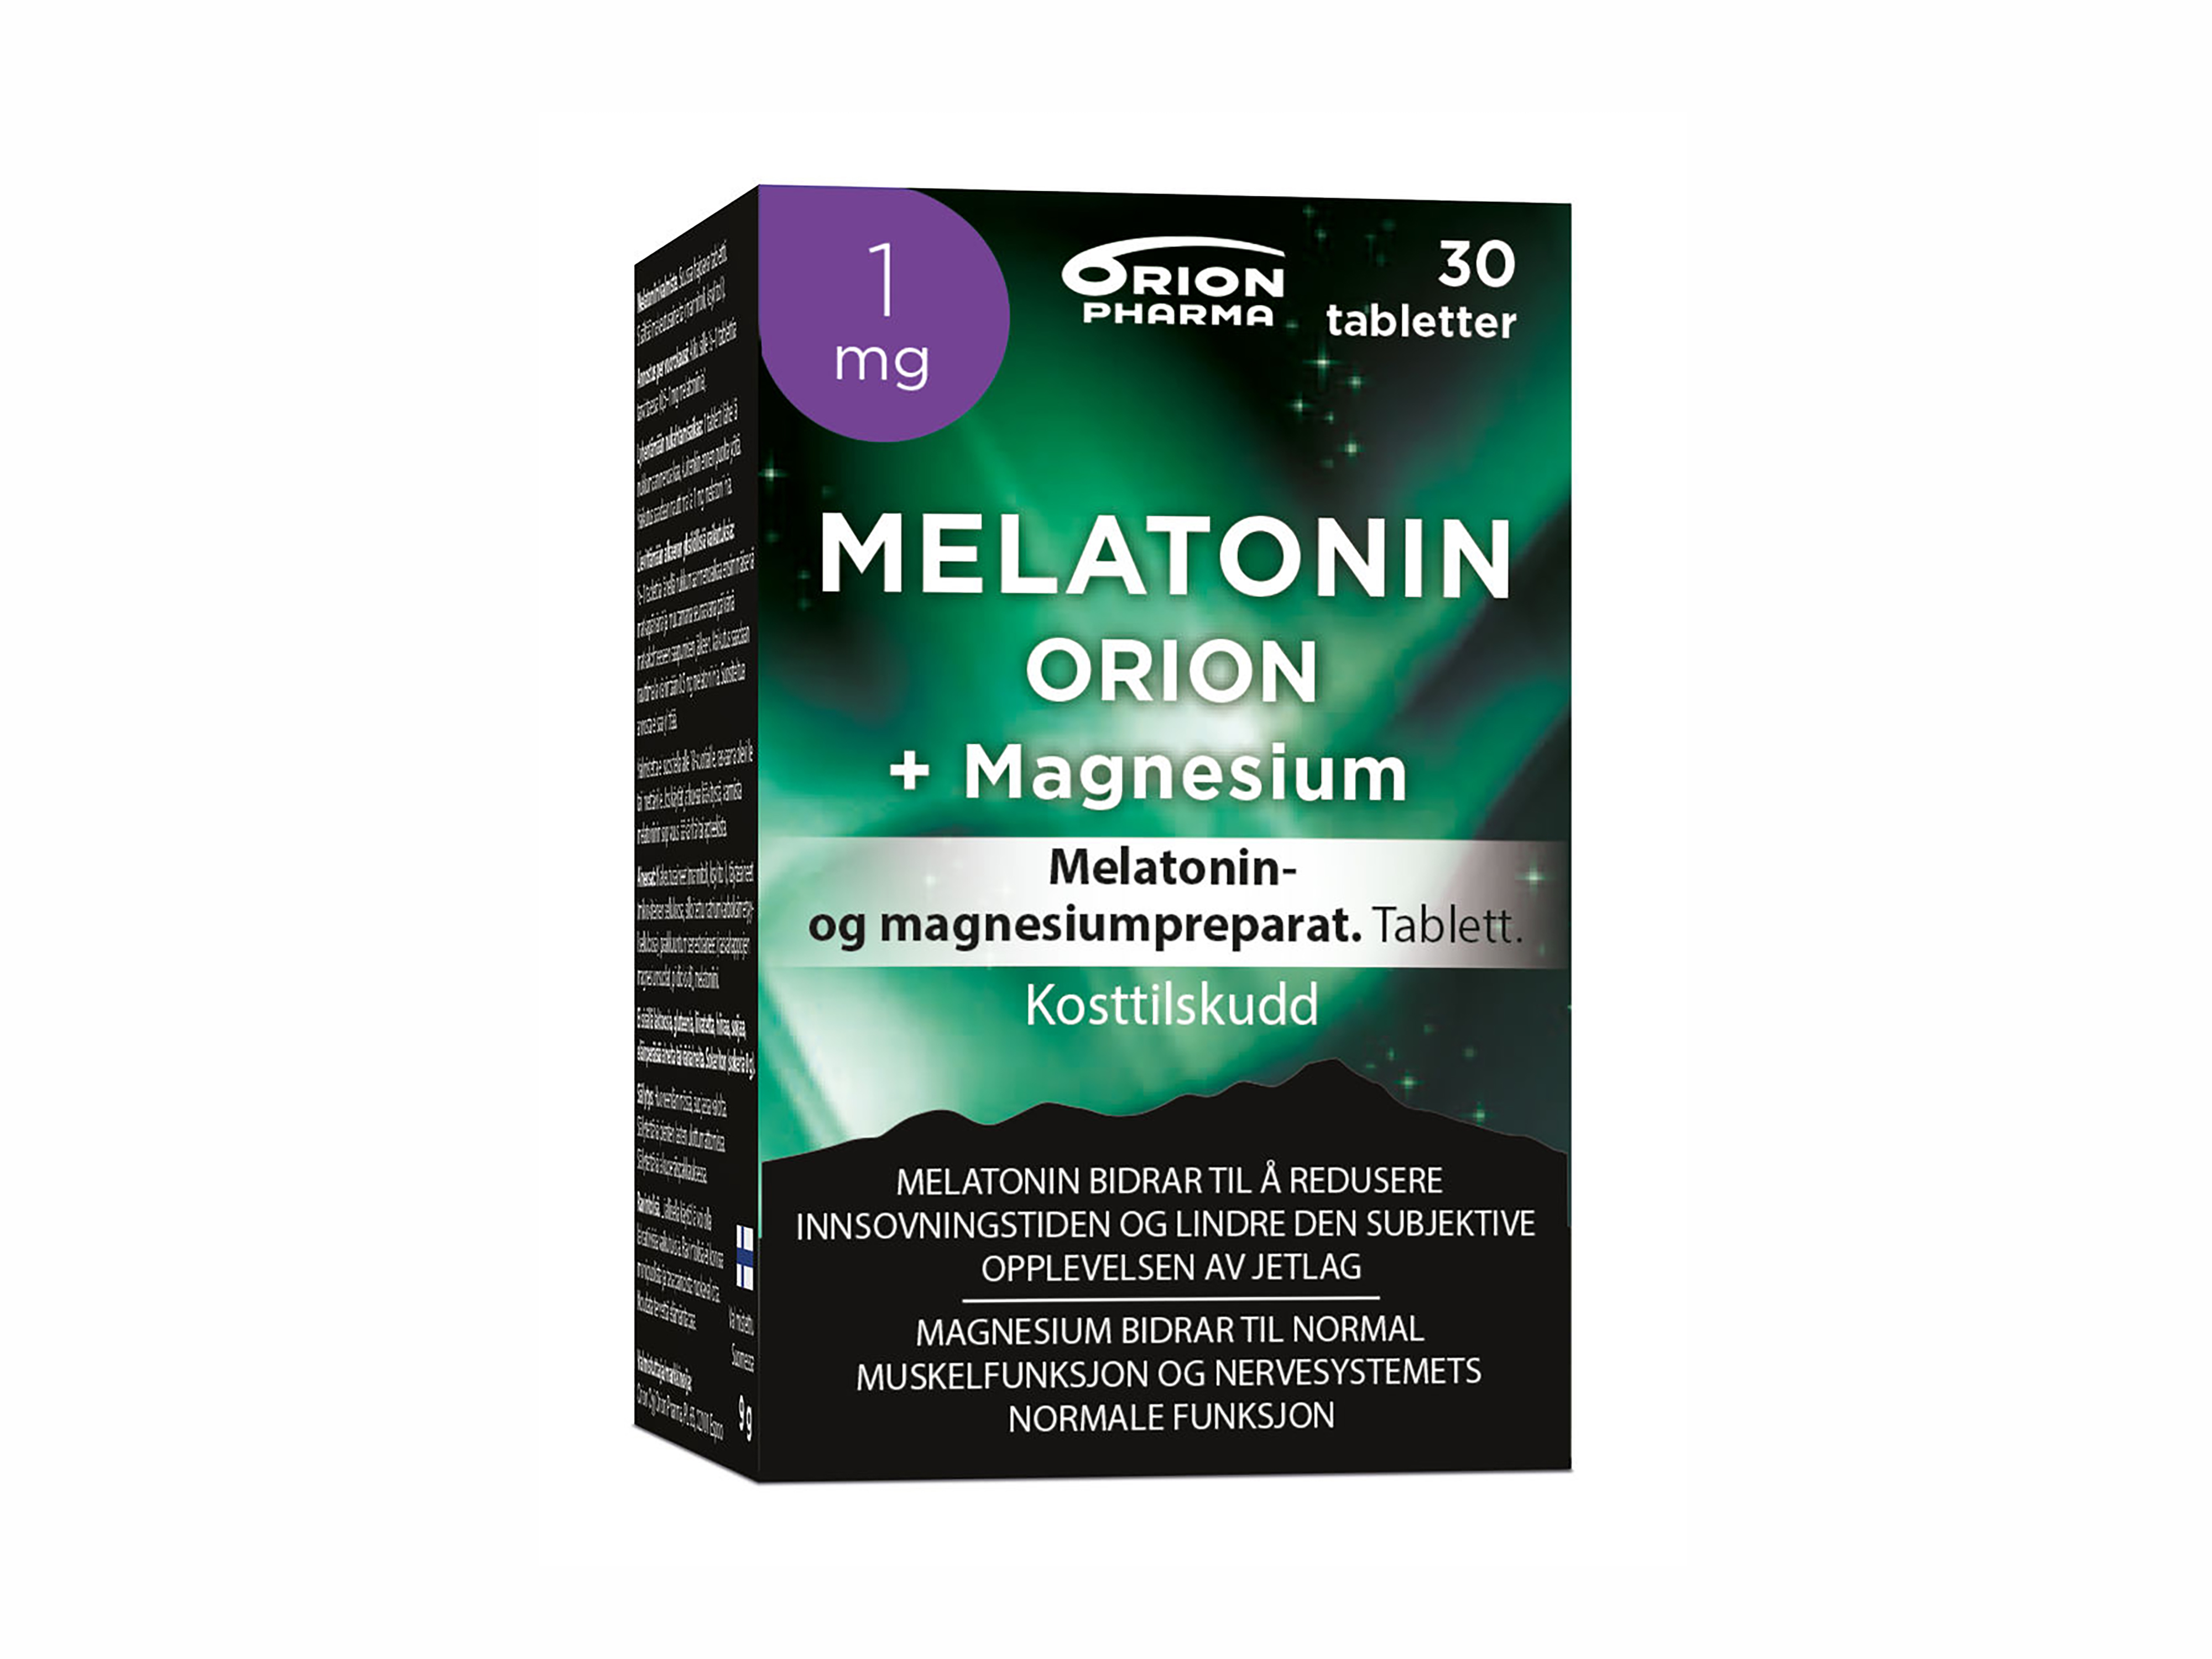 Melatonin Orion Melatonin 1mg + Magnesium, 30 stk